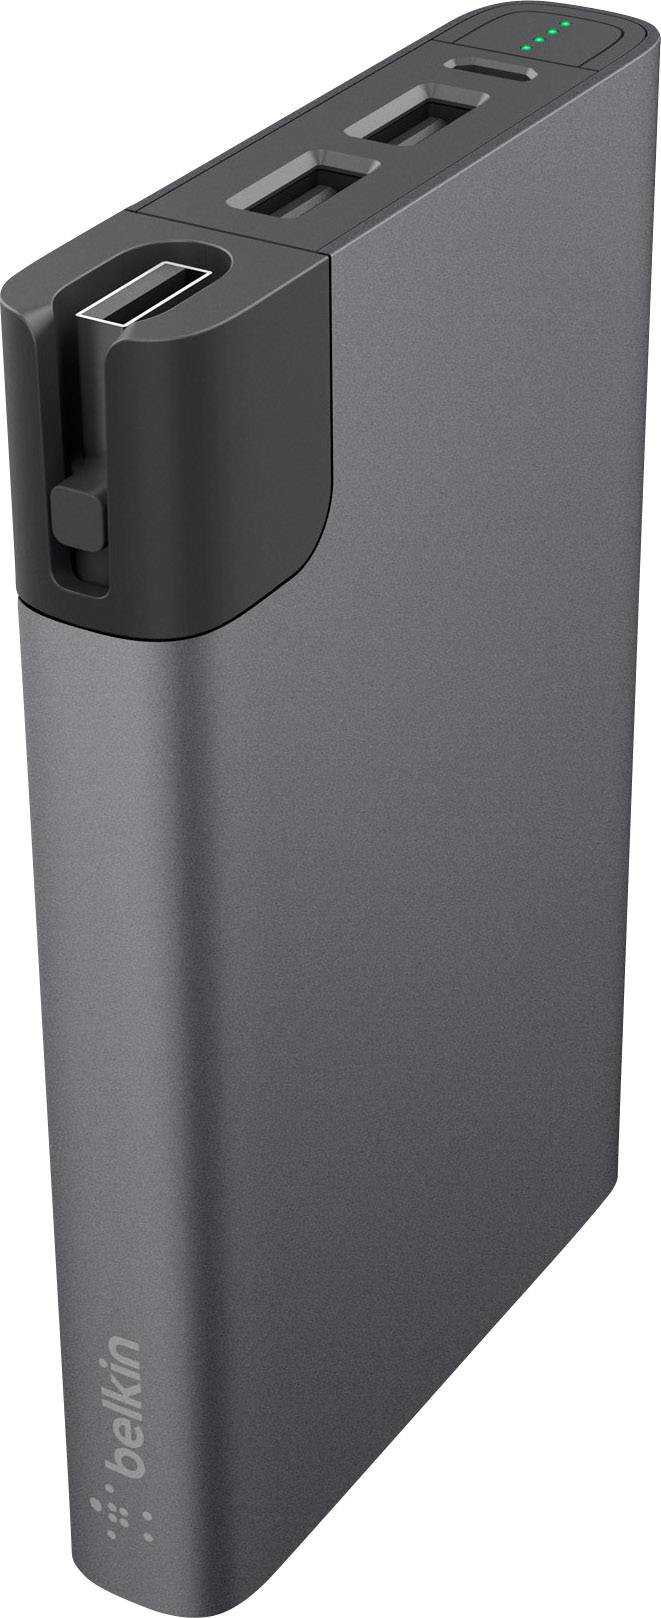 Belkin mixit RockStar 10000 Power bank (spare battery) Li